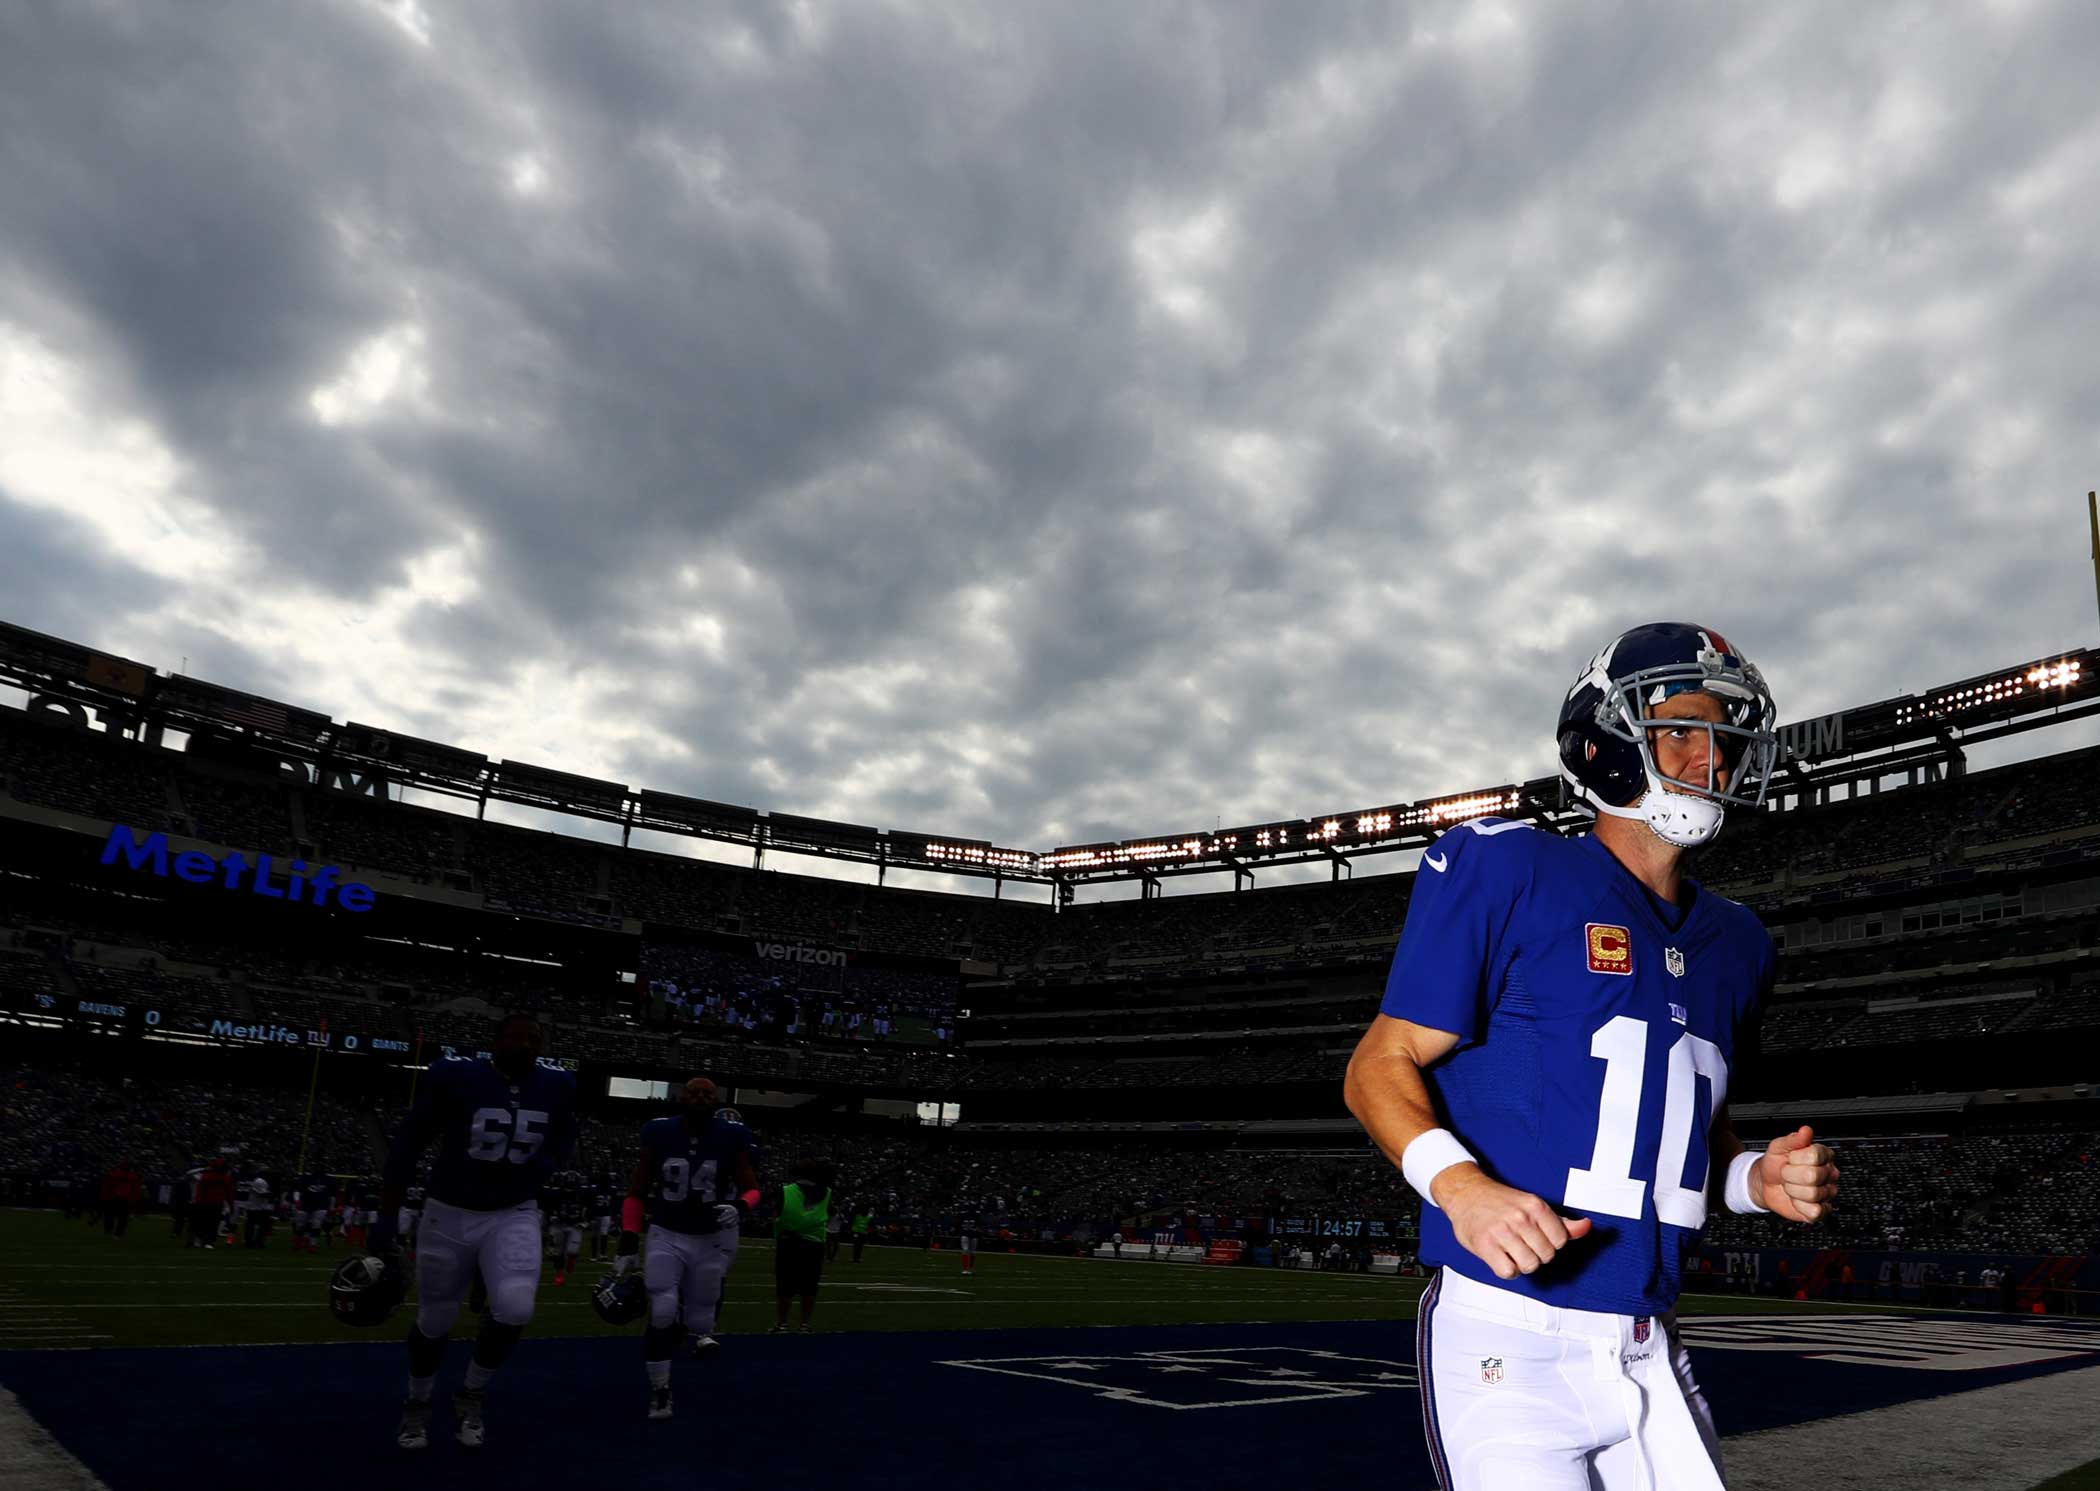 Eli Manning of the New York Giants runs off the field after warmups before the game against the Baltimore Ravens at MetLife Stadium on Oct. 16, 2016 in East Rutherford, New Jersey.